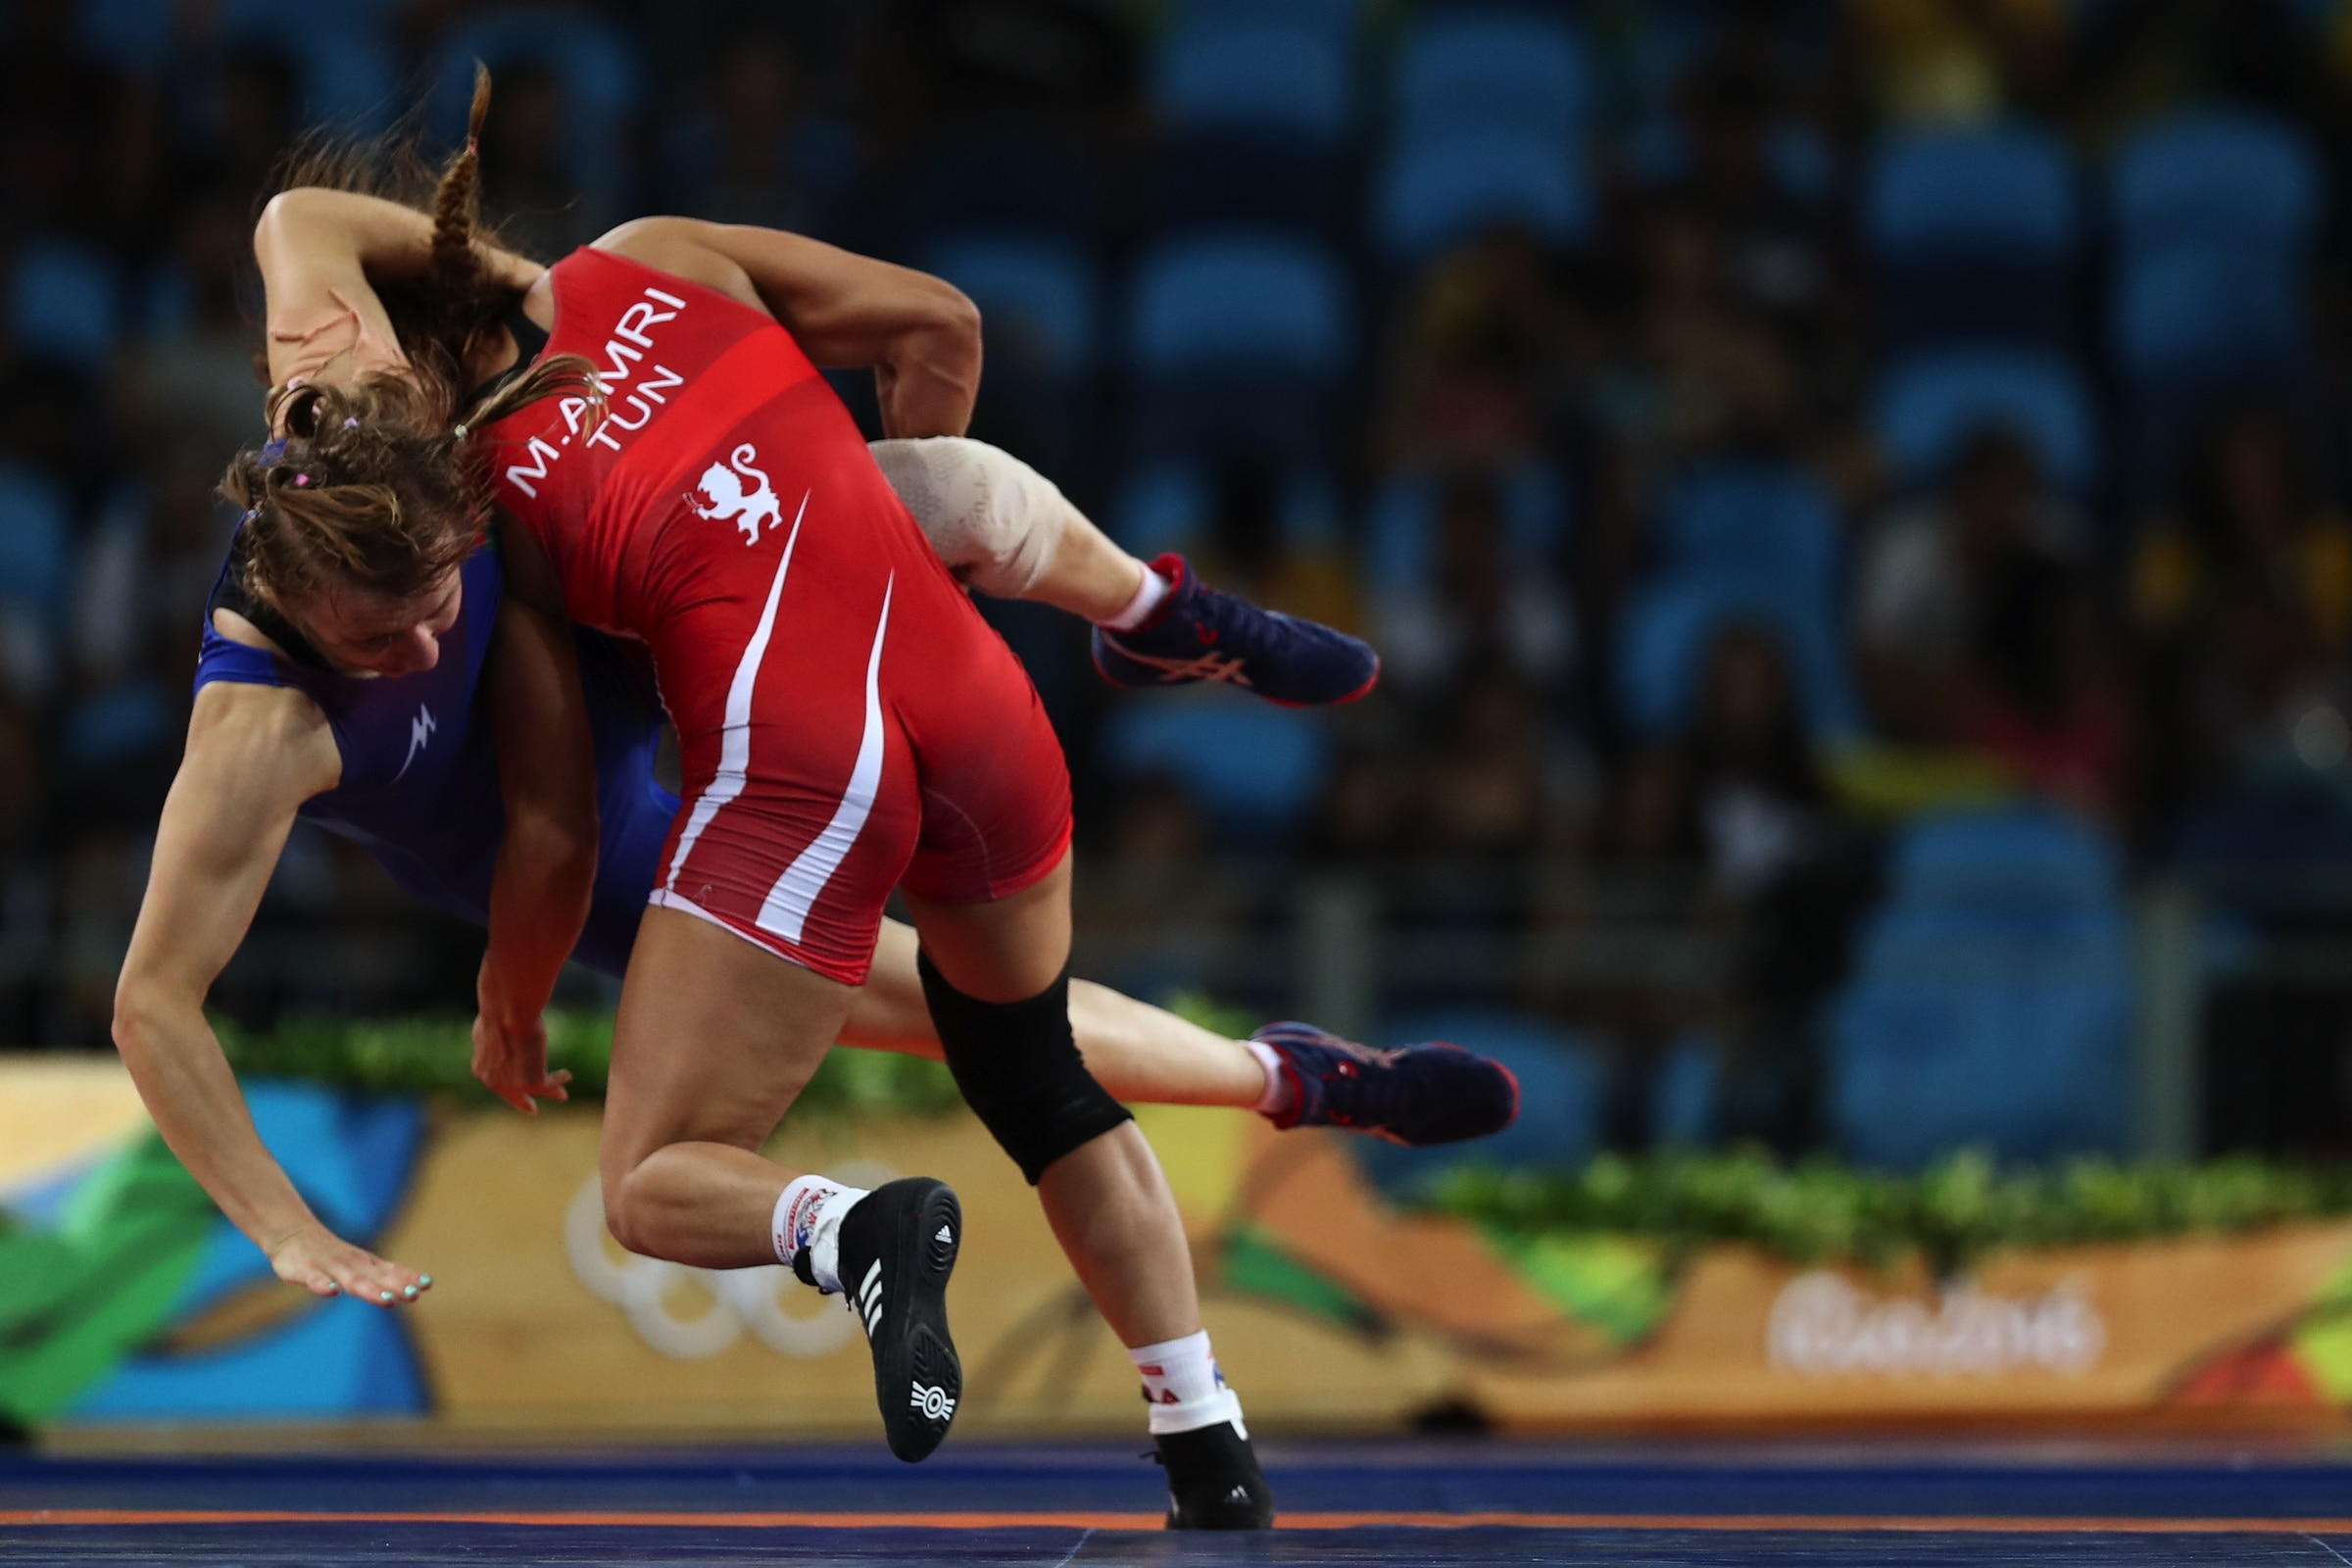 Wrestling - Freestyle 58kg Women